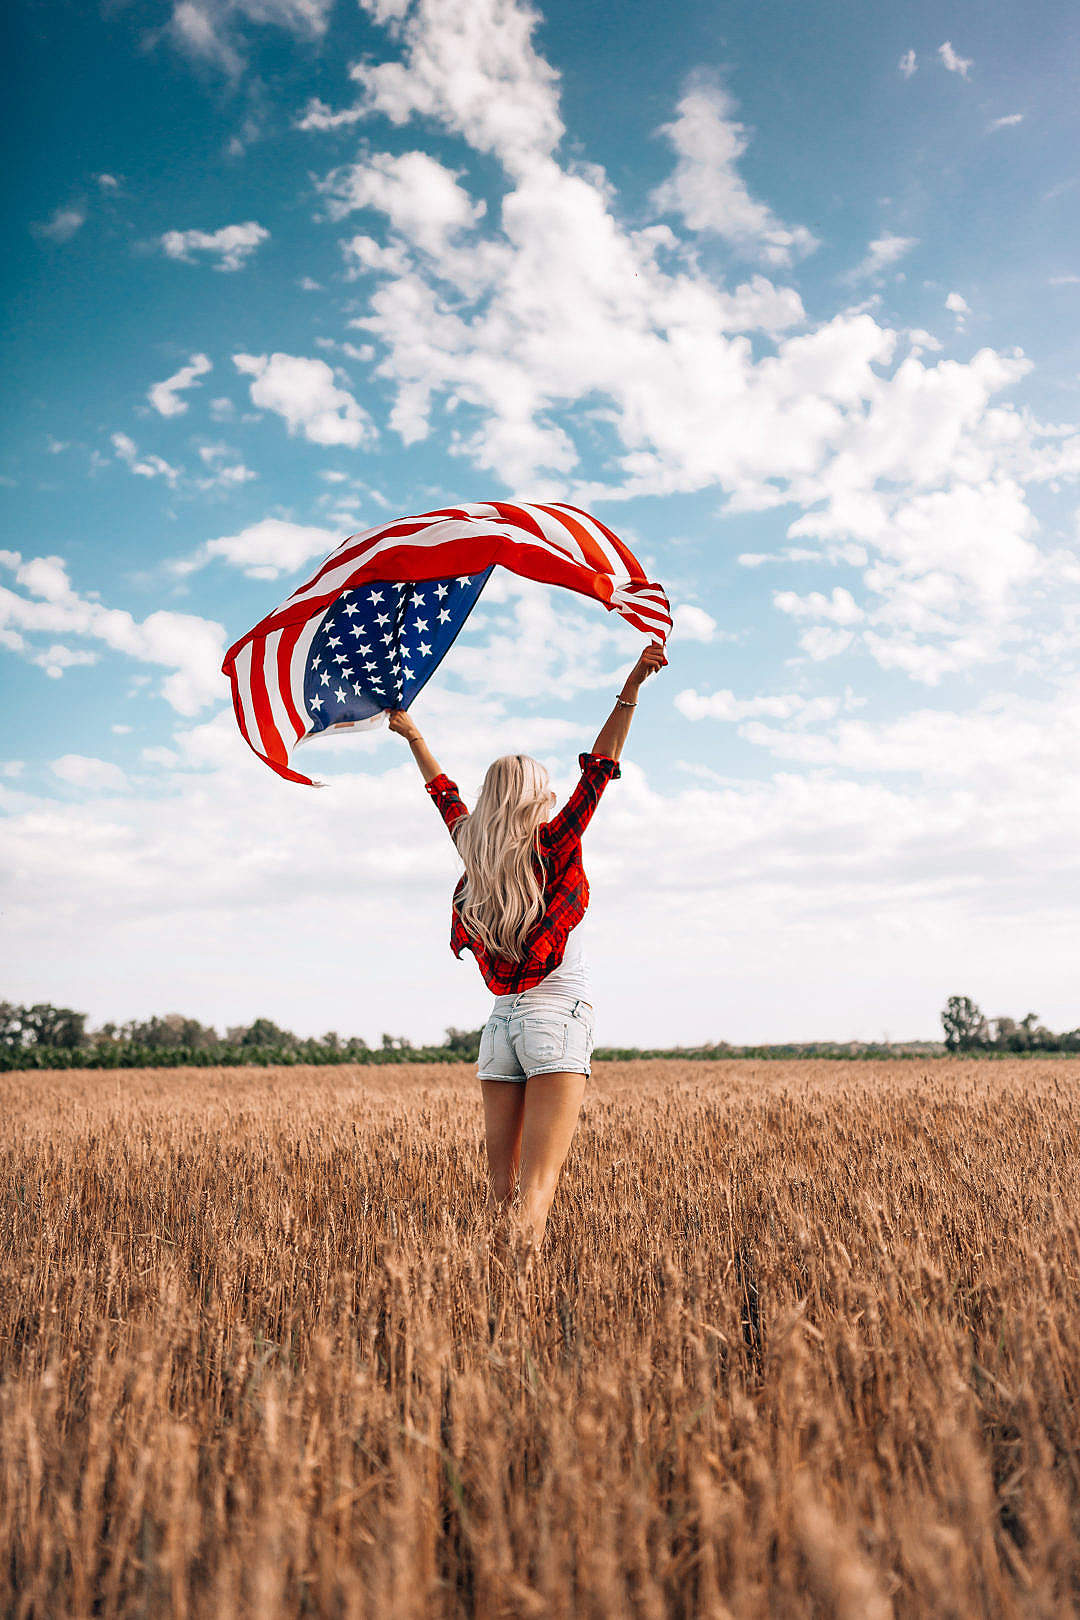 Download Woman Holding an American Flag in a Field FREE Stock Photo